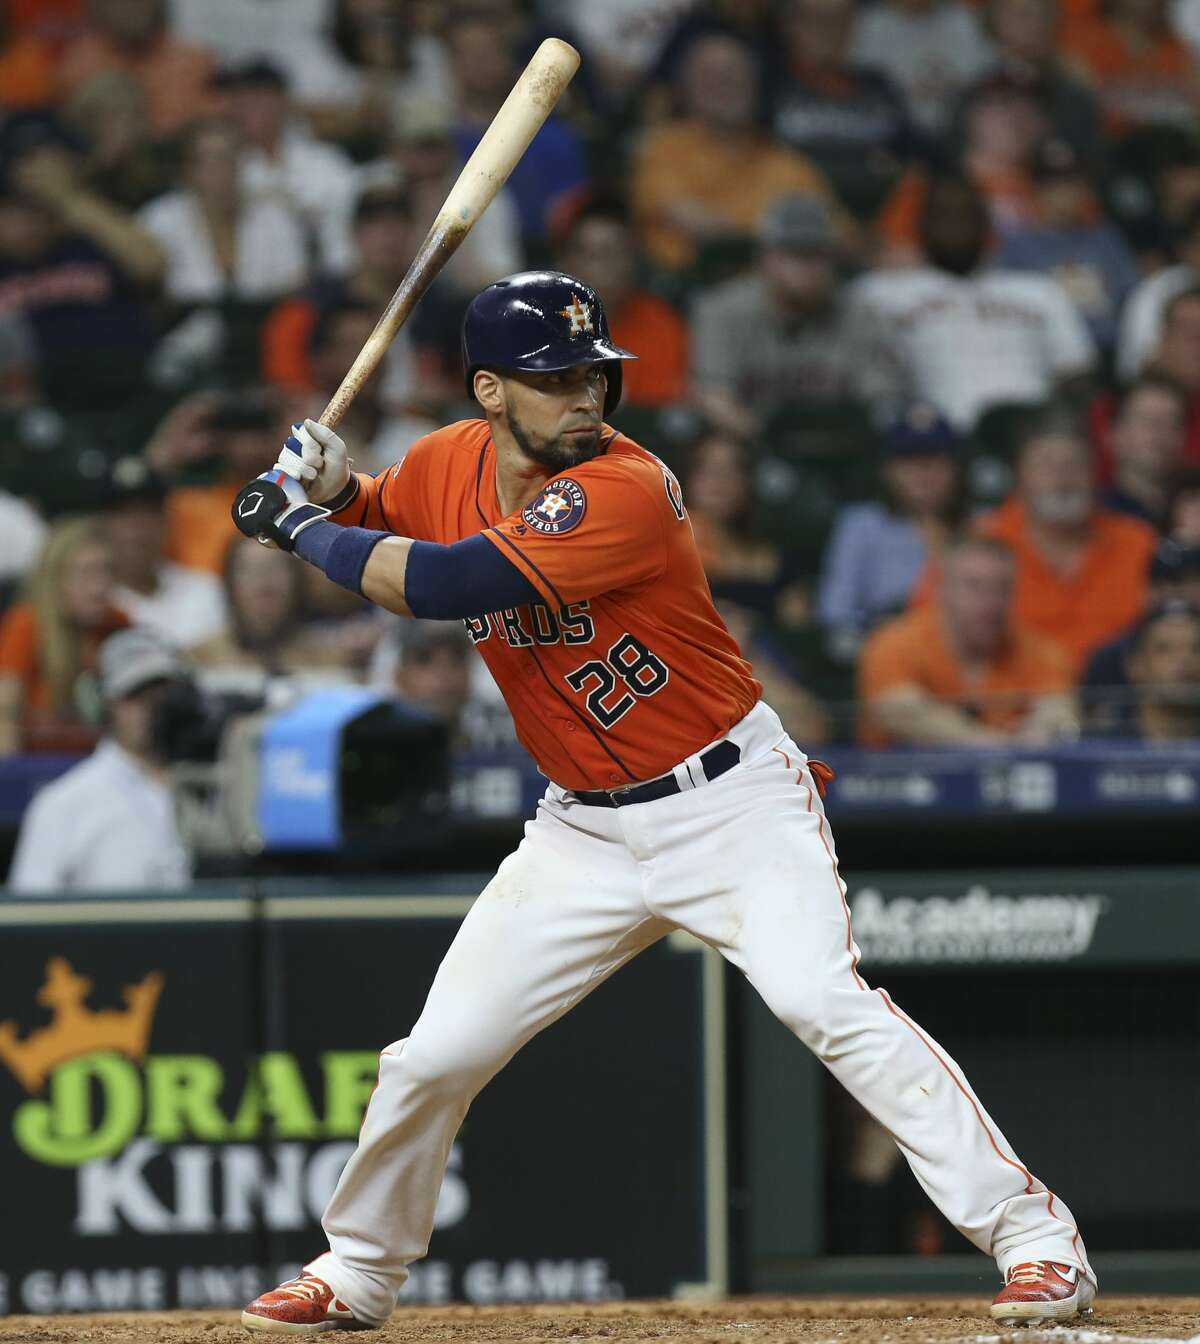 Houston Astros catcher Robinson Chirinos (28) hits a walk-off double and Yuli Gurriel scores during the bottom eleventh inning of the MLB game at Minute Maid Park on Friday, June 7, 2019, in Houston. The Houston Astros defeated the Baltimore Orioles 4-3.